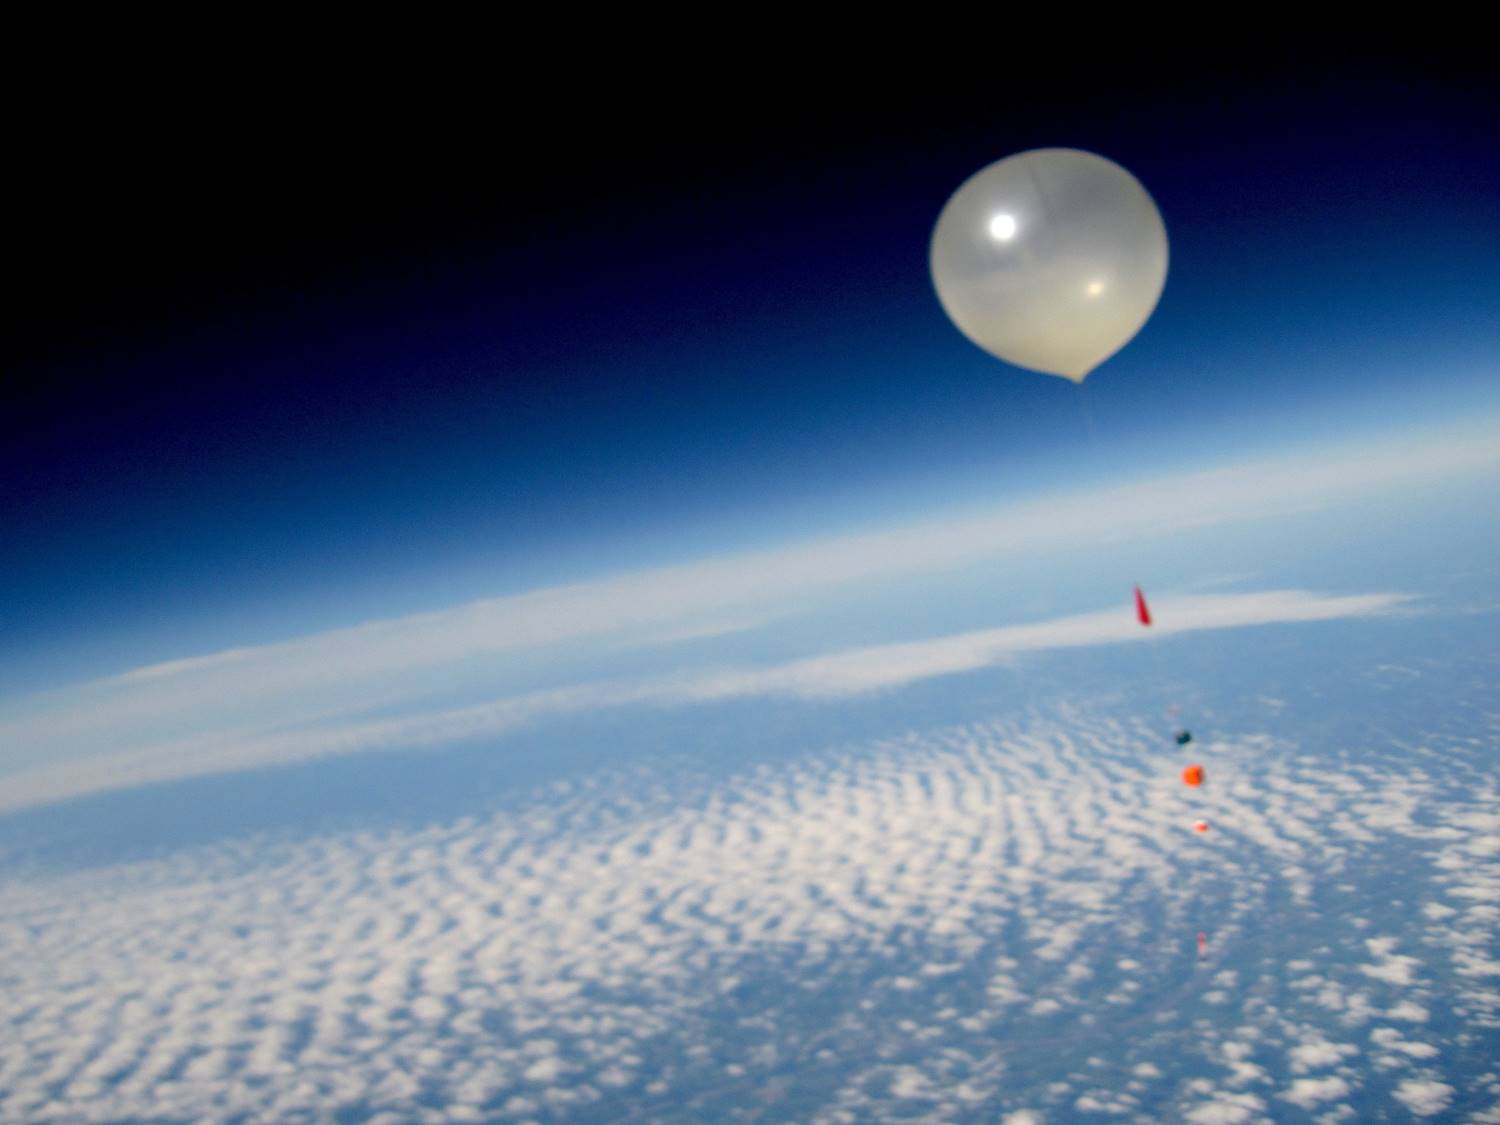 weather balloon.jpg